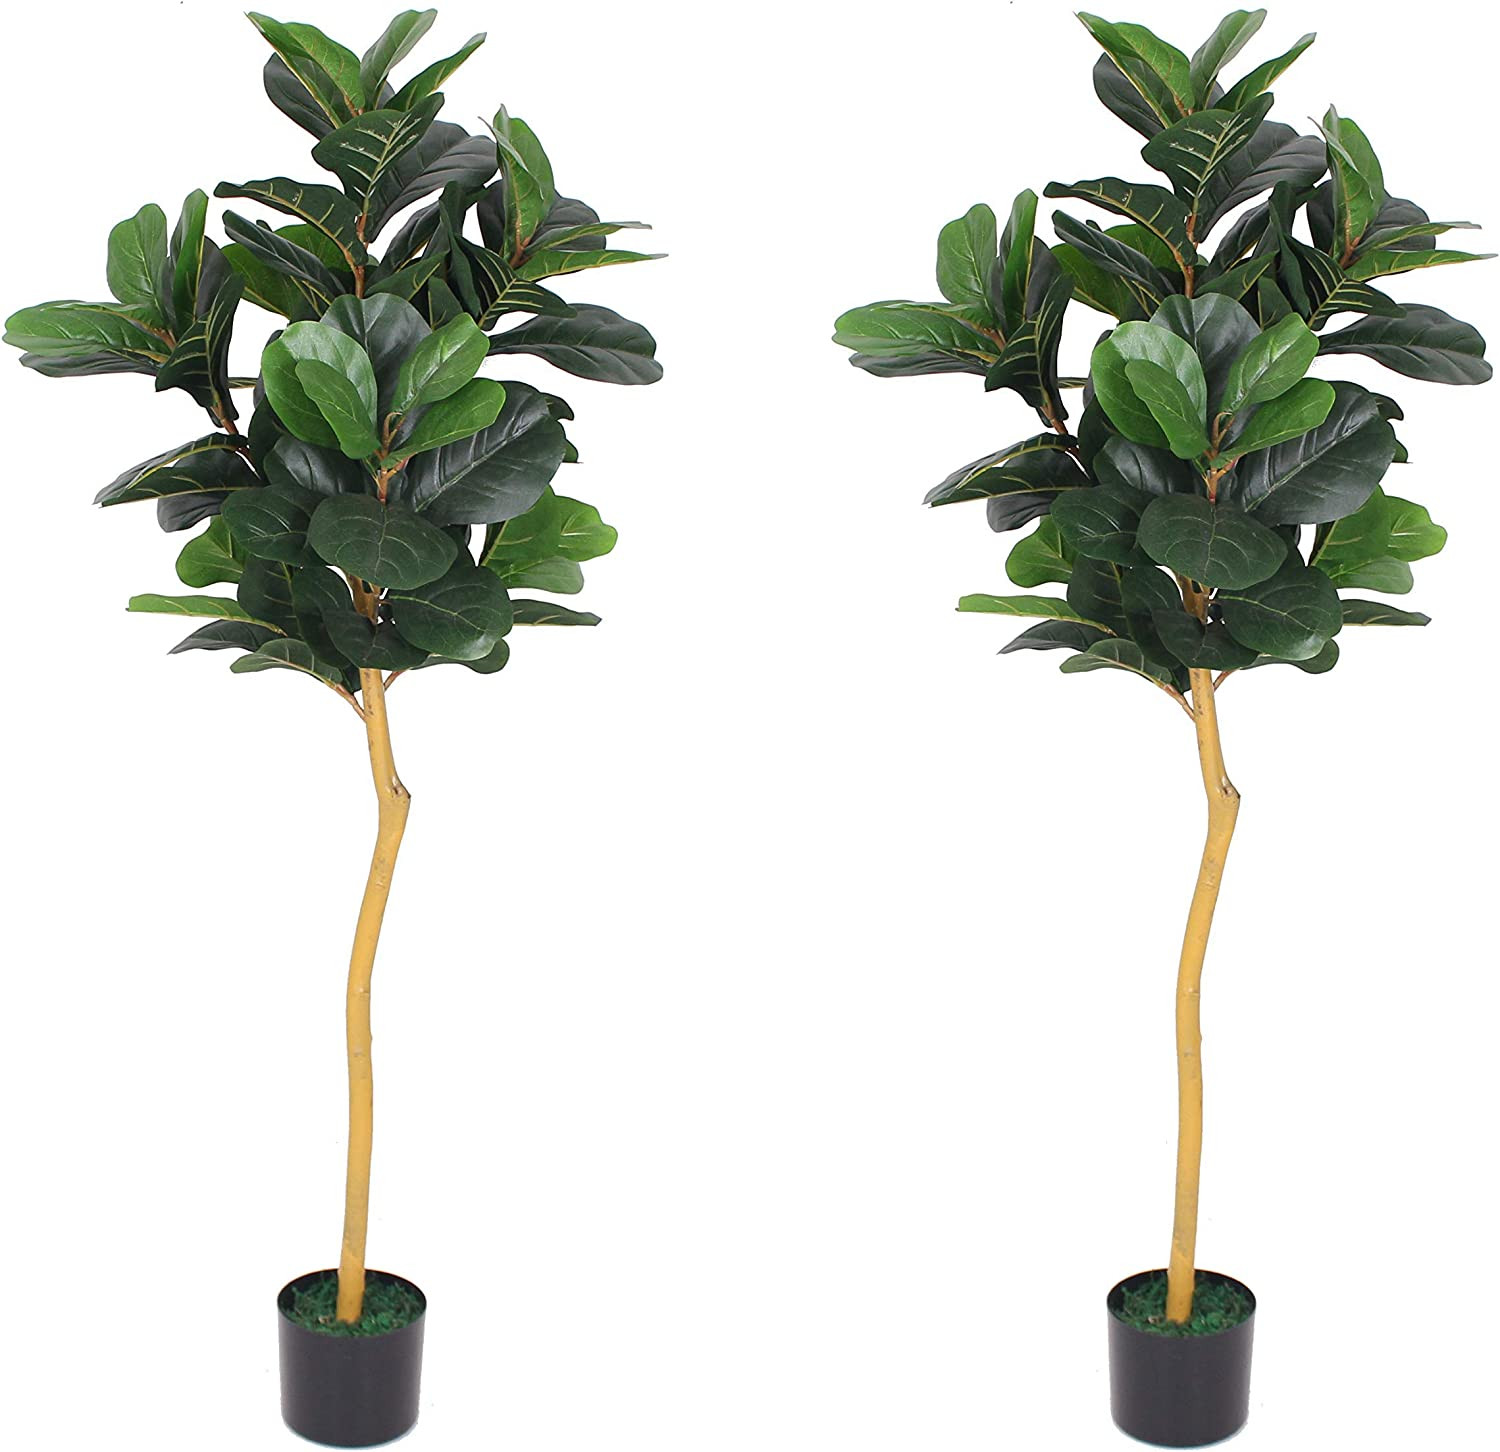 AMERIQUE Pair Gorgeous Max 86% OFF 5 Feet Each Leaf Tree Limited Special Price Artifici Fig Fiddle